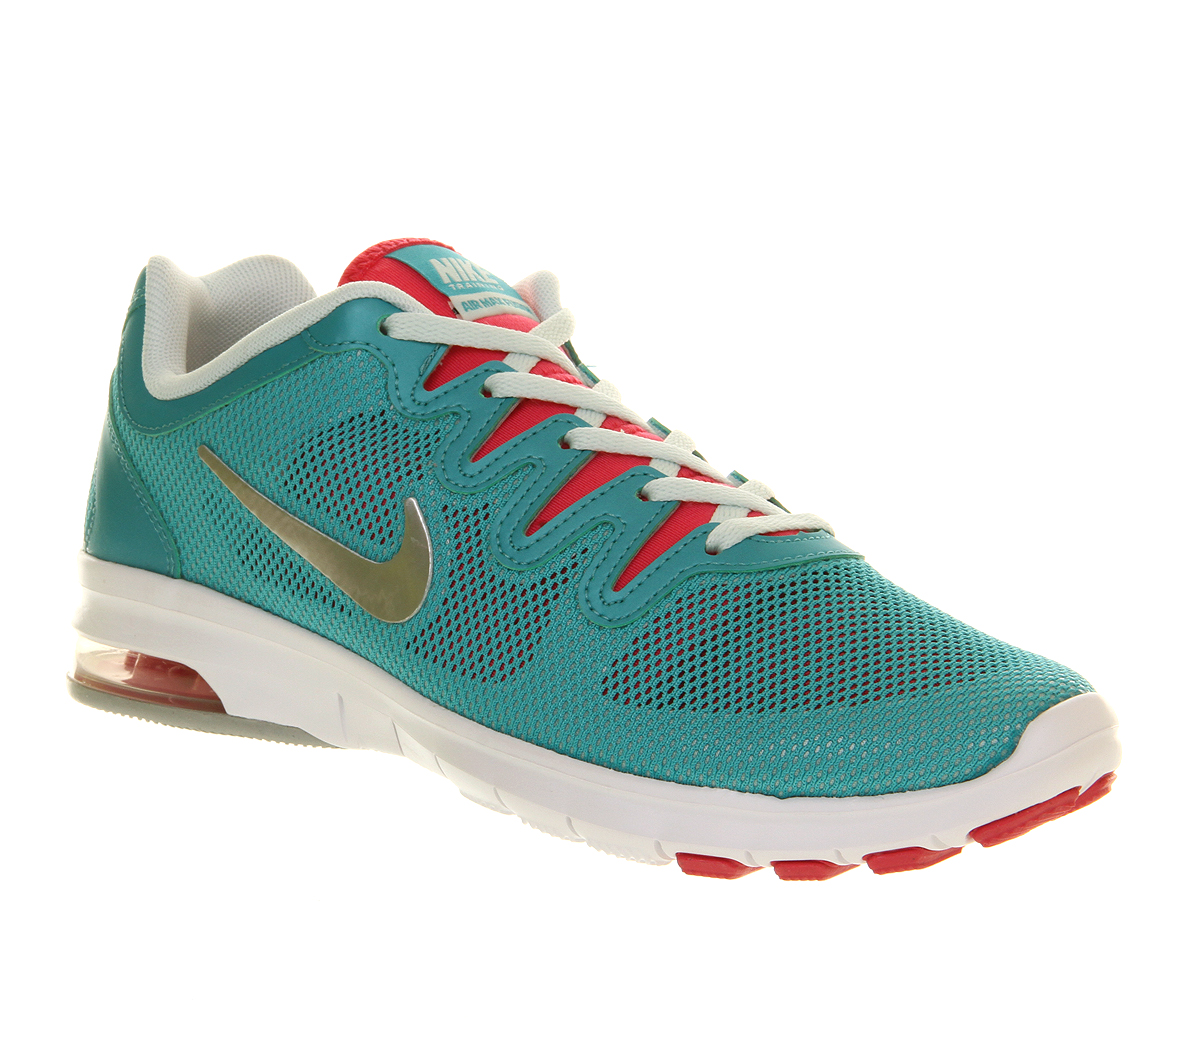 Nike Wmns Air Max Fusion Sport Turquoise Metallic in argento rosa in Metallic   1620a3